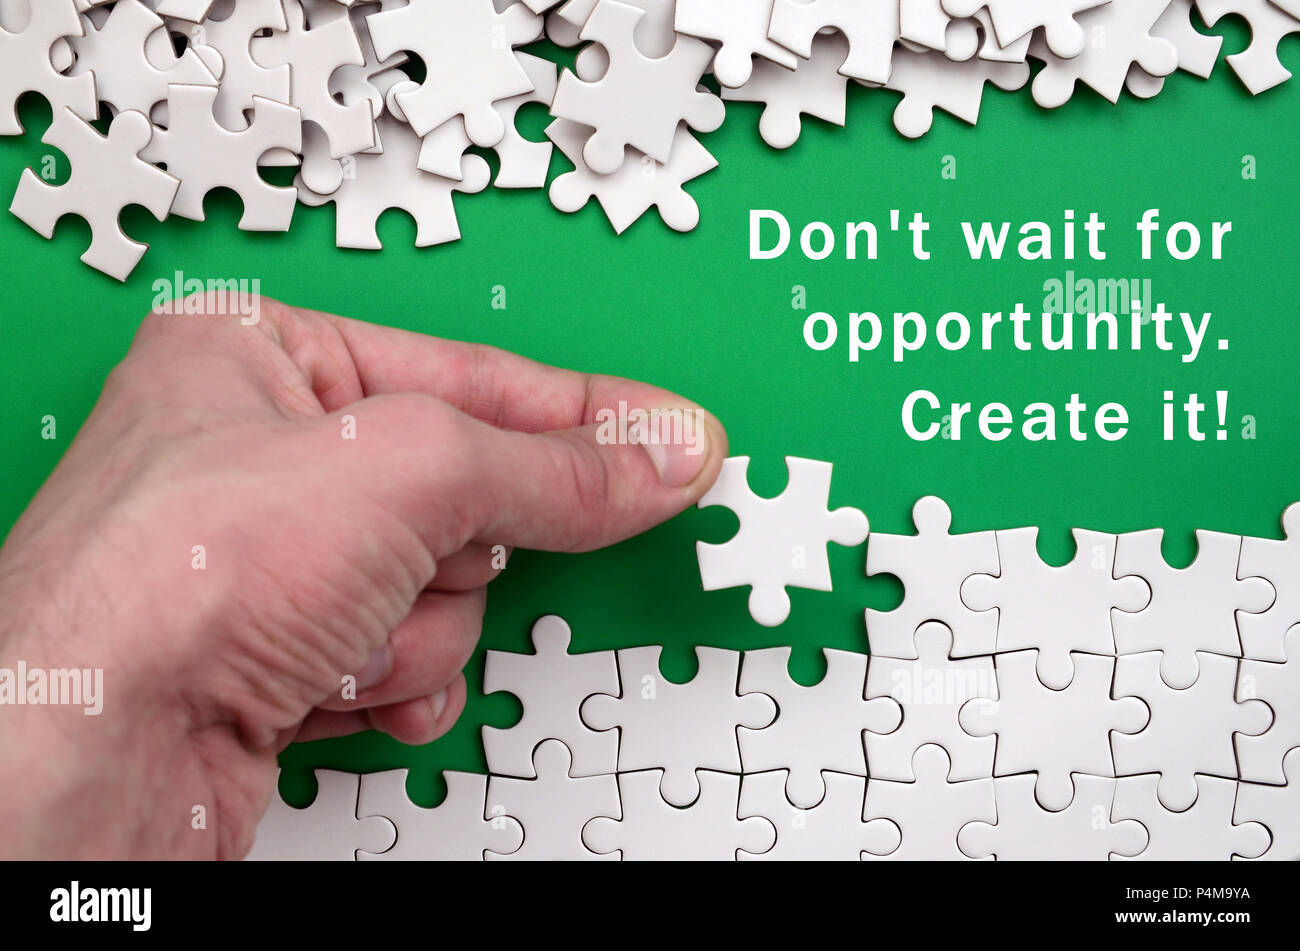 don t wait for opportunity create it the hand folds a white jigsaw